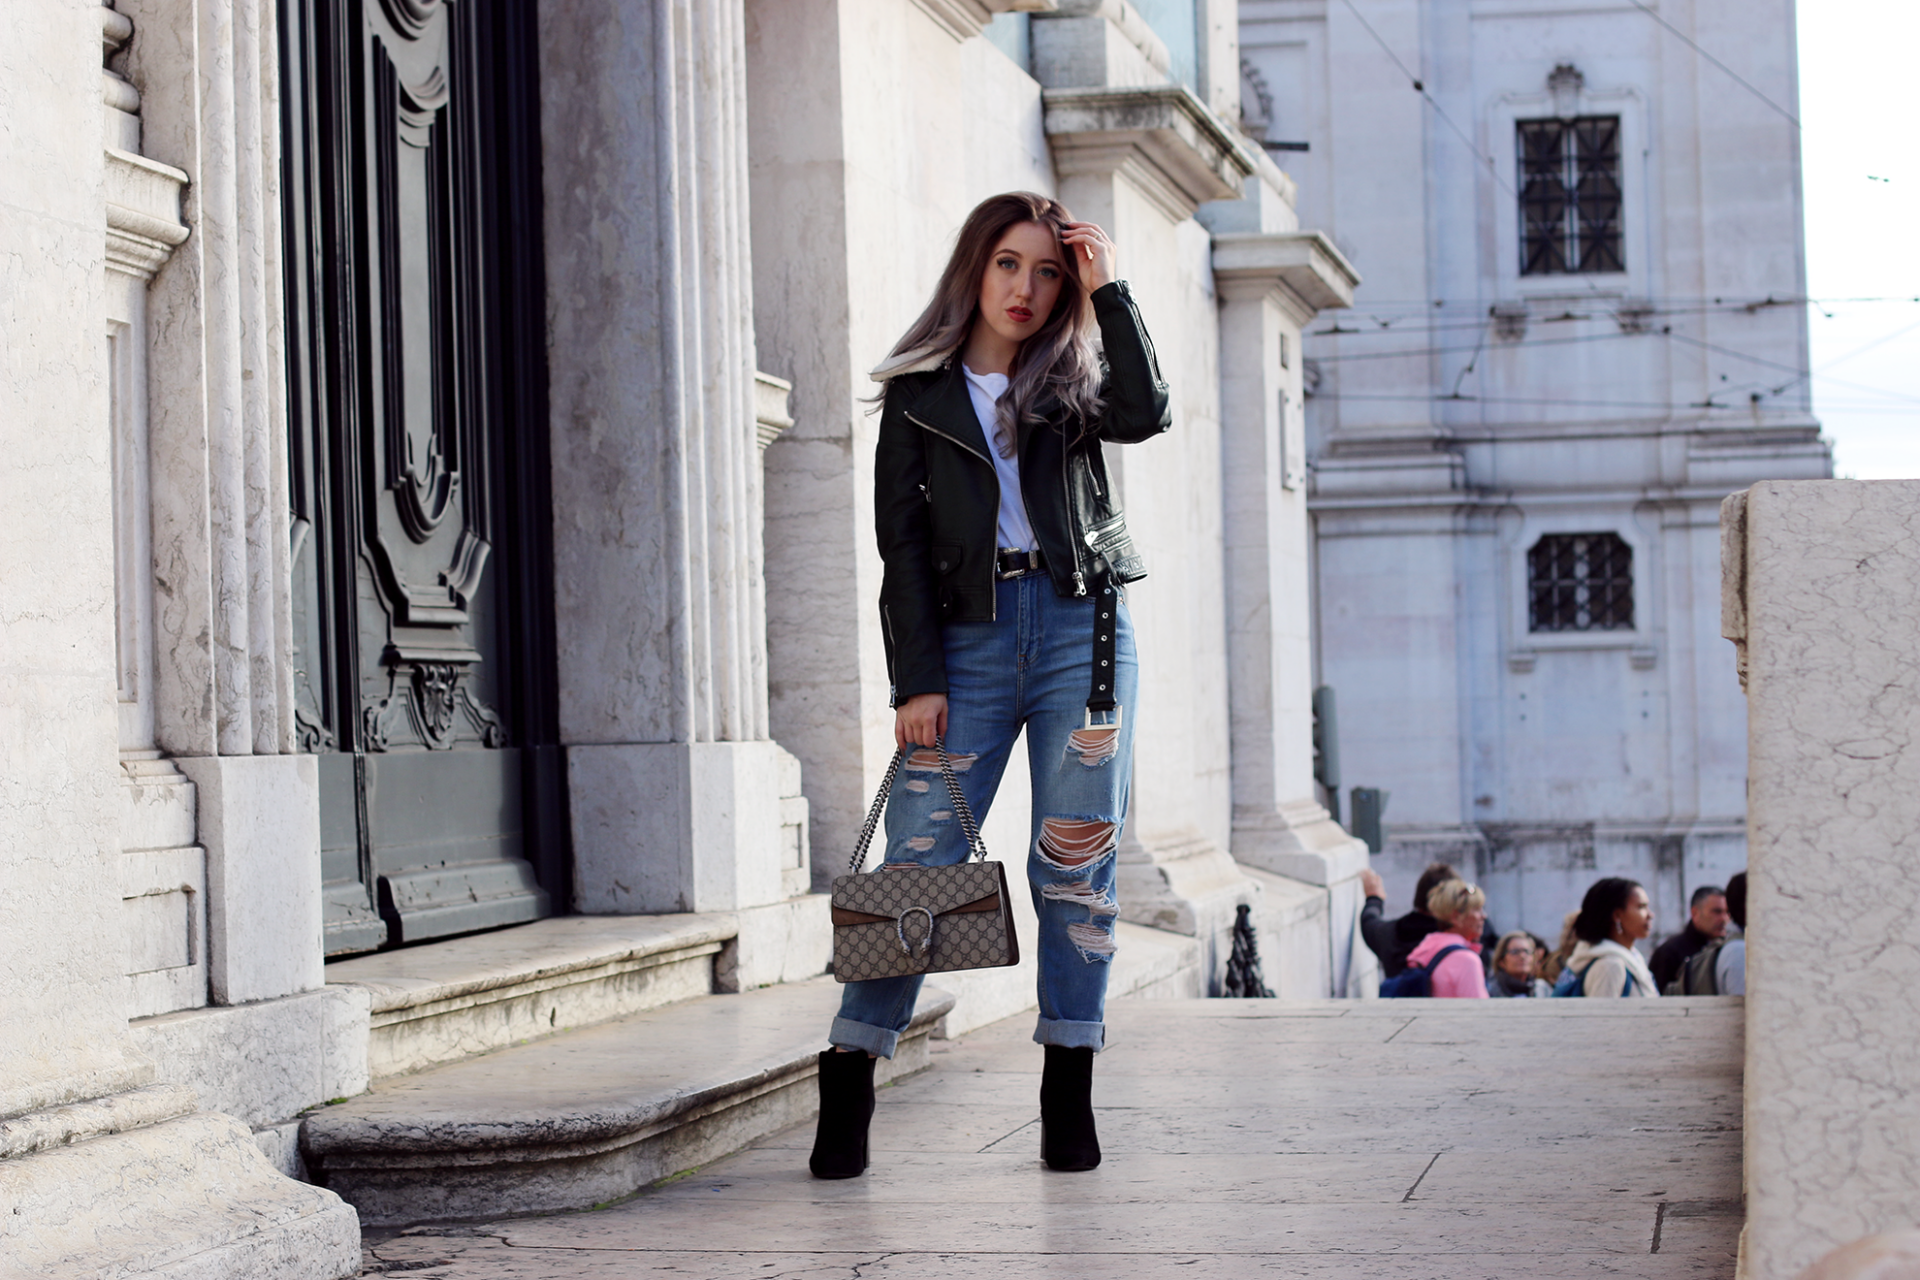 OUTFIT OF THE DAY | What I Wore In Lisbon